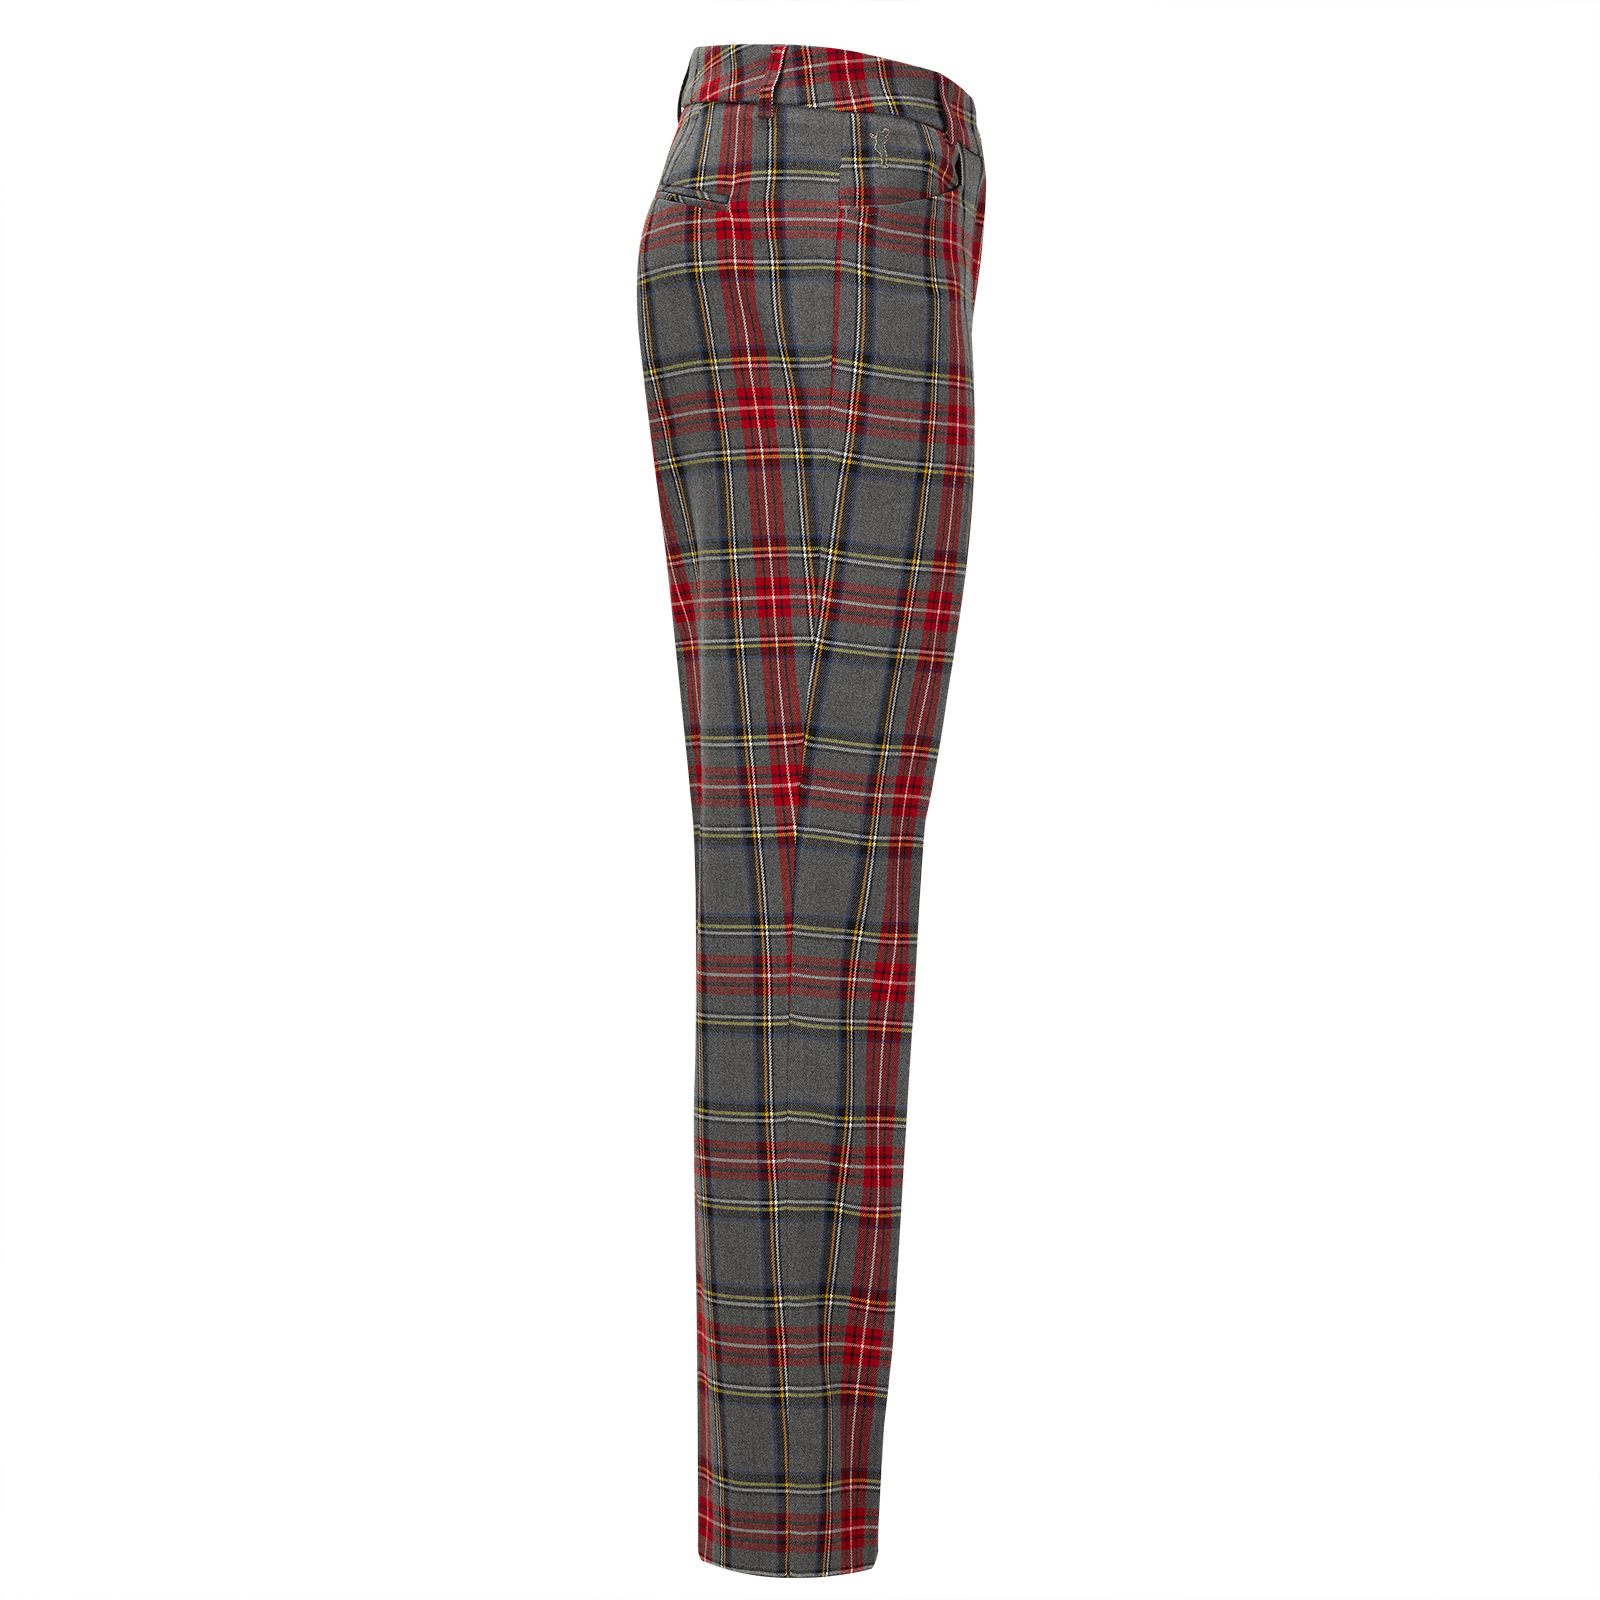 Damen Karo-Golfhose in moderner 7/8 Länge aus weichem Stretch in Regular Fit